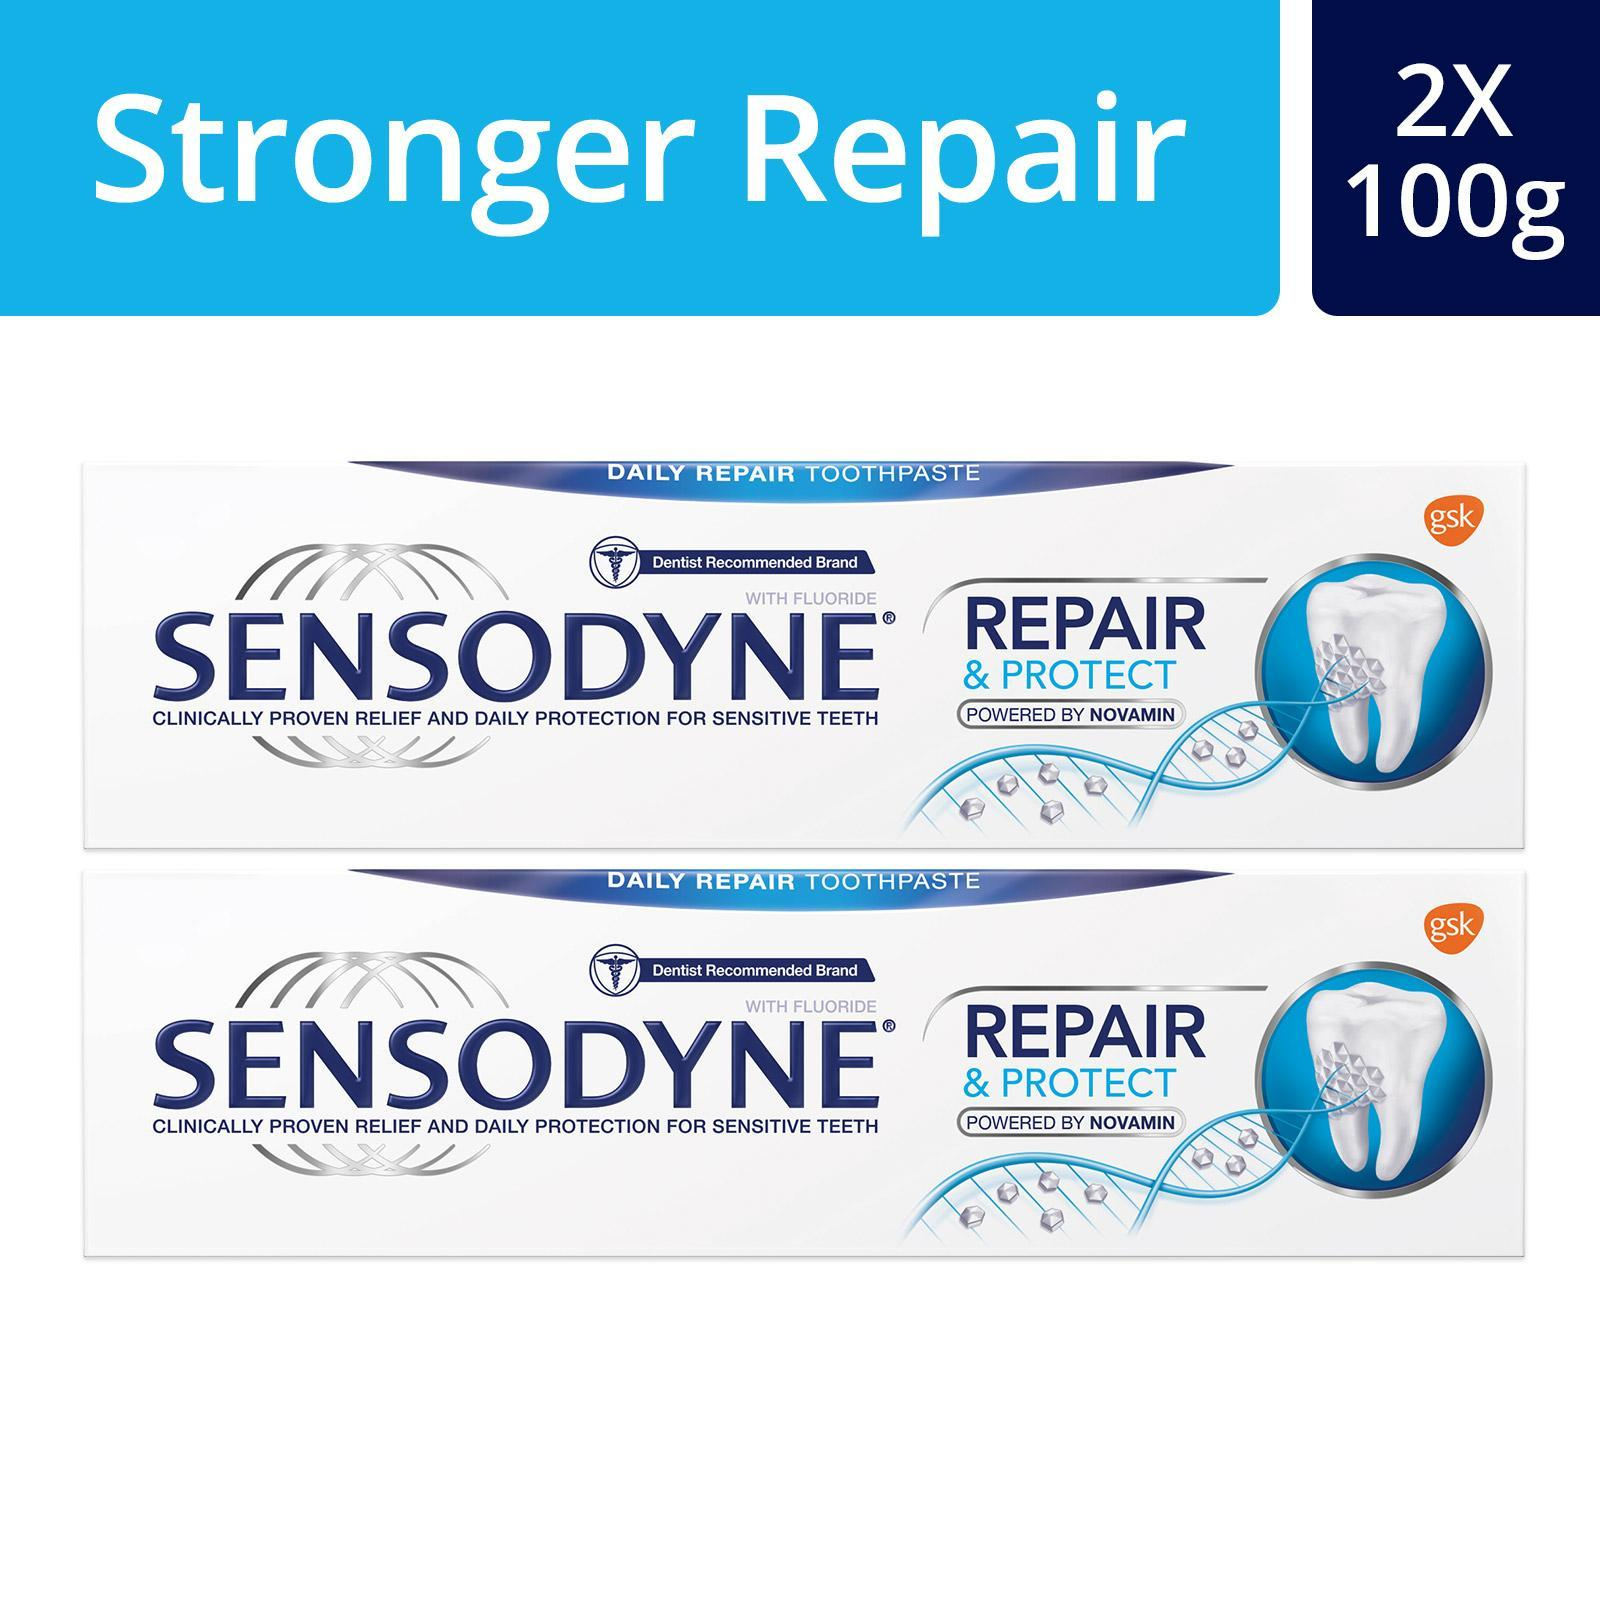 Sensodyne Repair + Protect (bundle Of 2x100g) By Gsk Official Store..